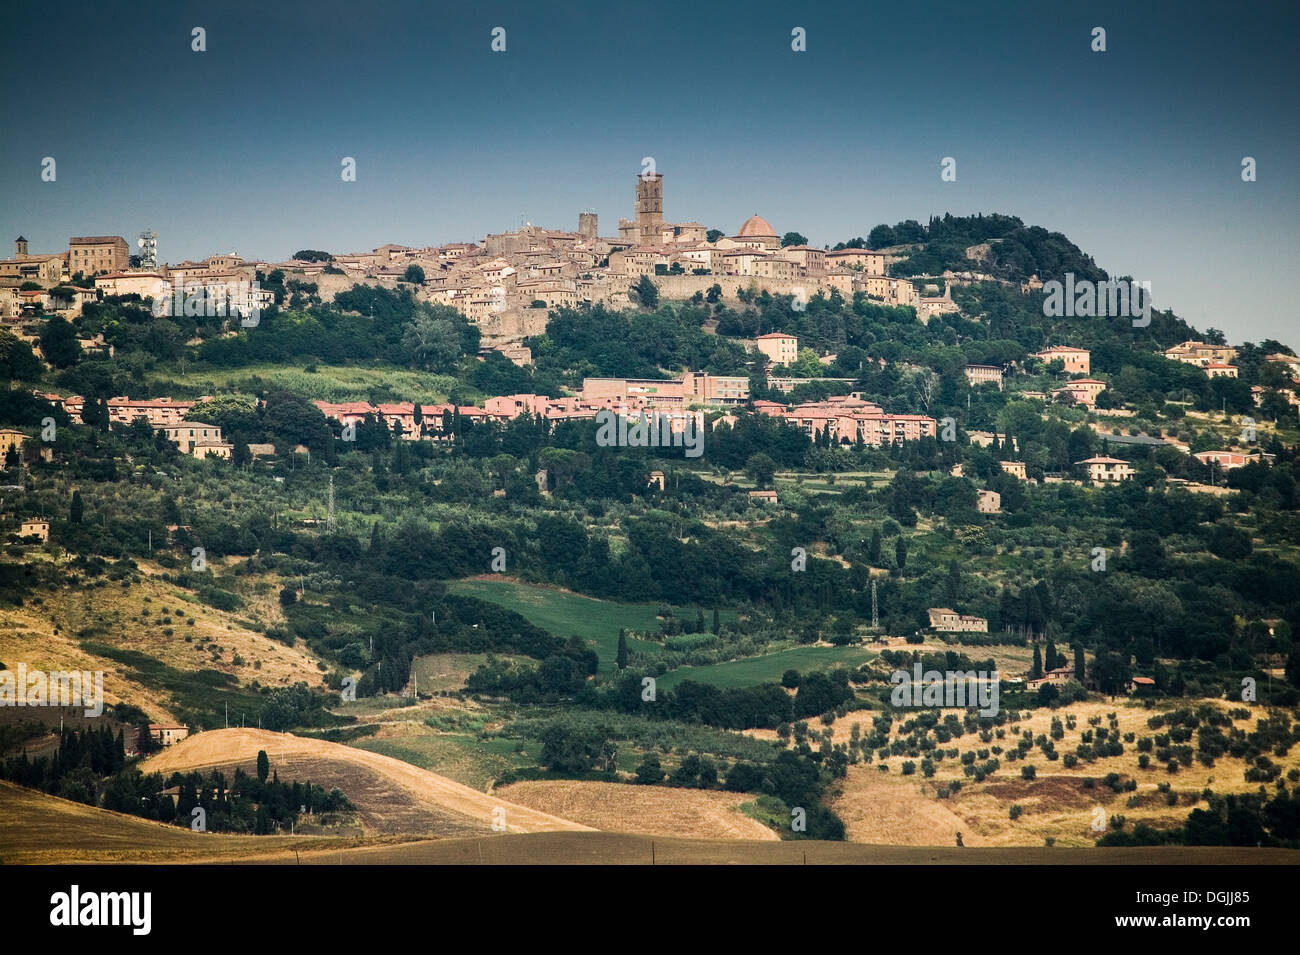 Distant view of Volterra town, Tuscany, Italy - Stock Image